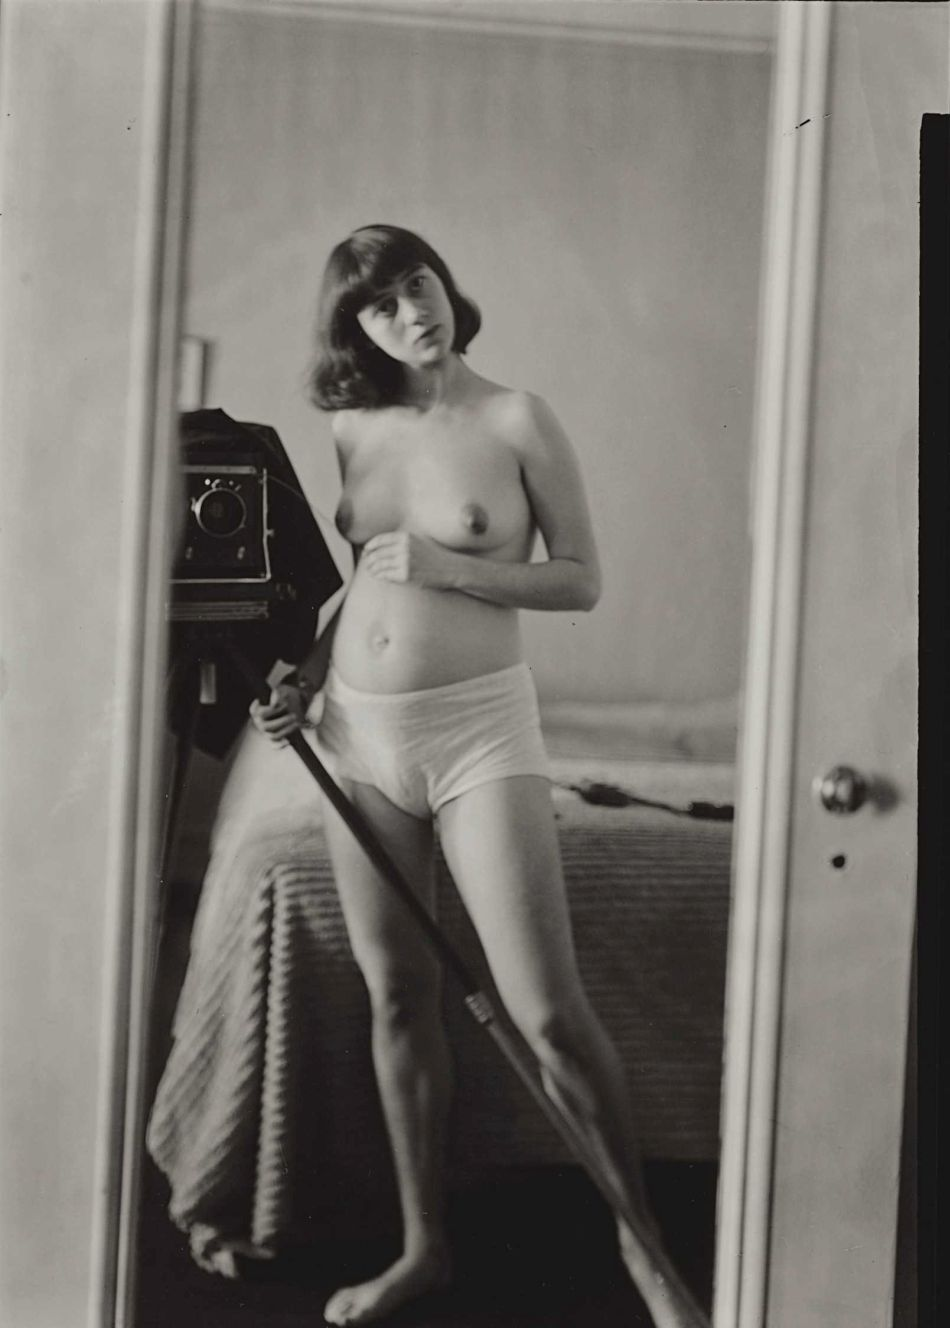 top-10-black-and-white-self-portraits-by-famous-photographers-Diane-Arbus